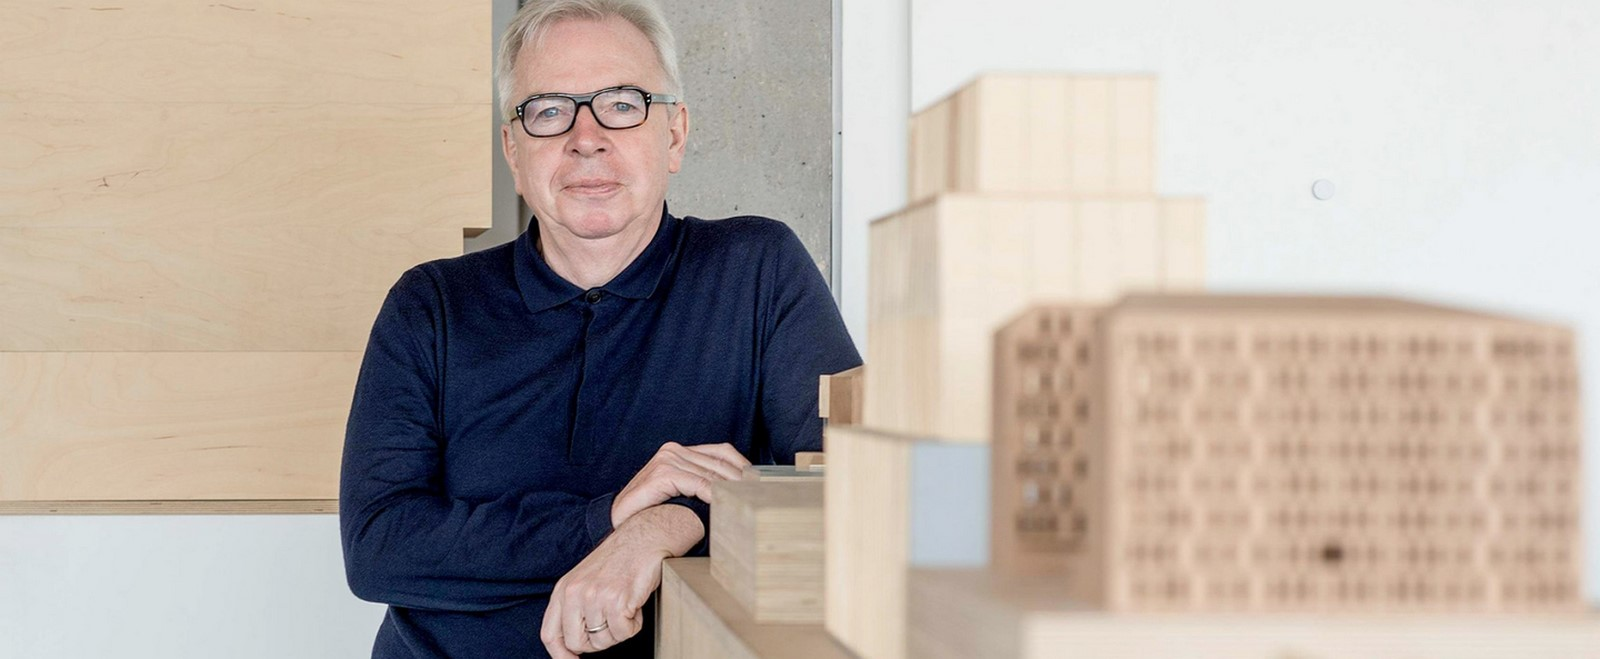 10 Things you did not know about David Chipperfield - Sheet12